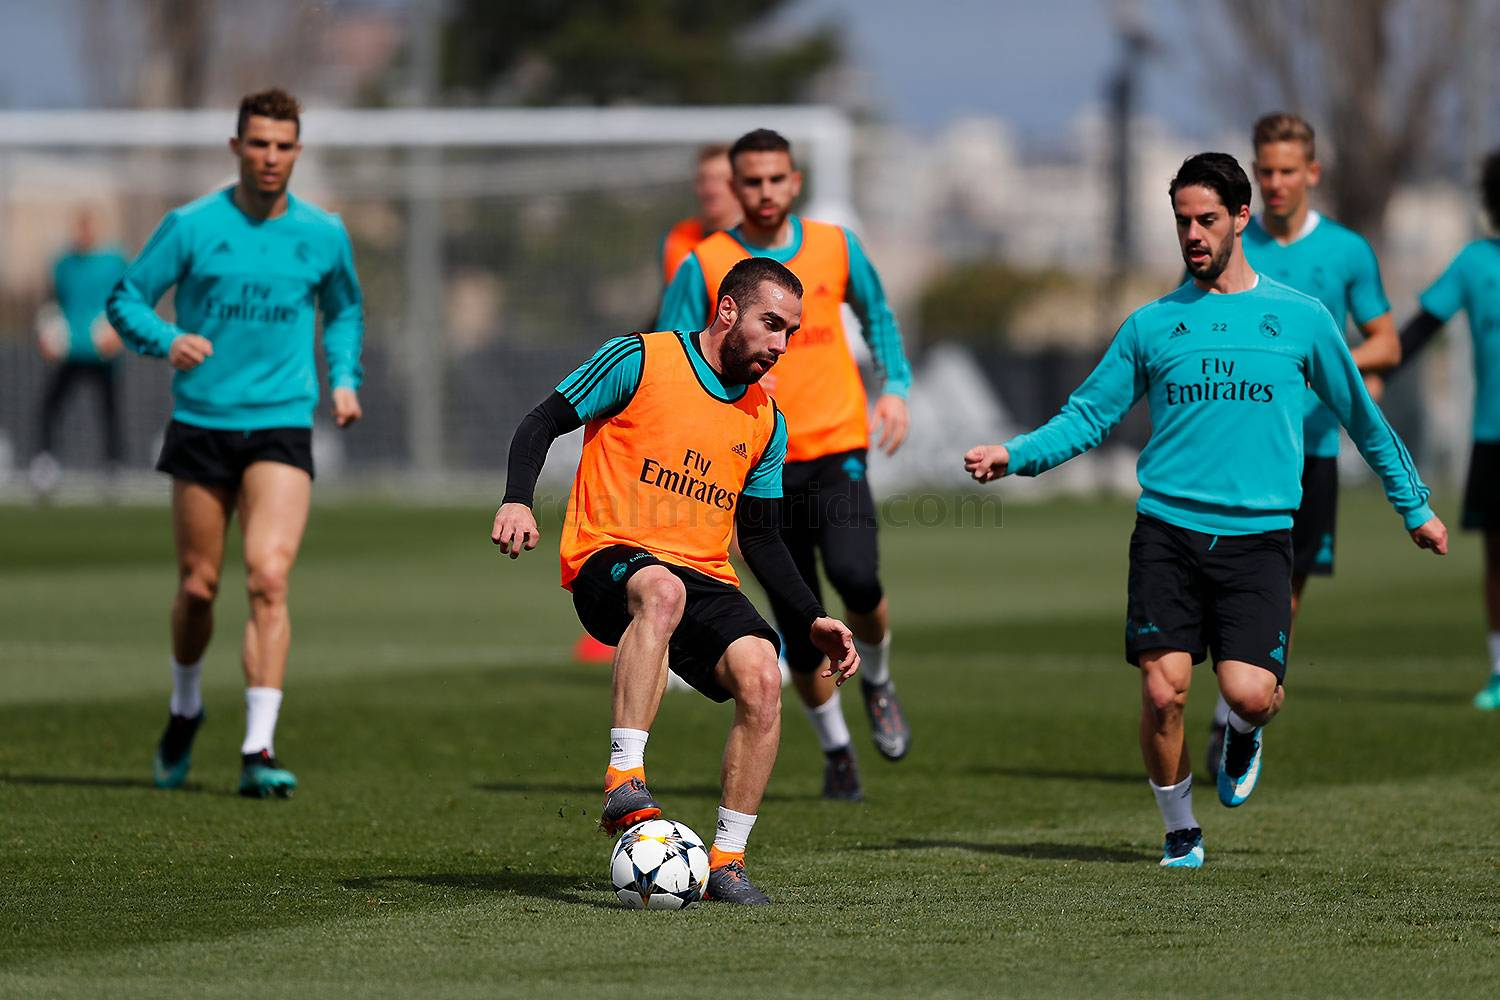 Real Madrid - Entrenamiento del Real Madrid - 01-04-2018